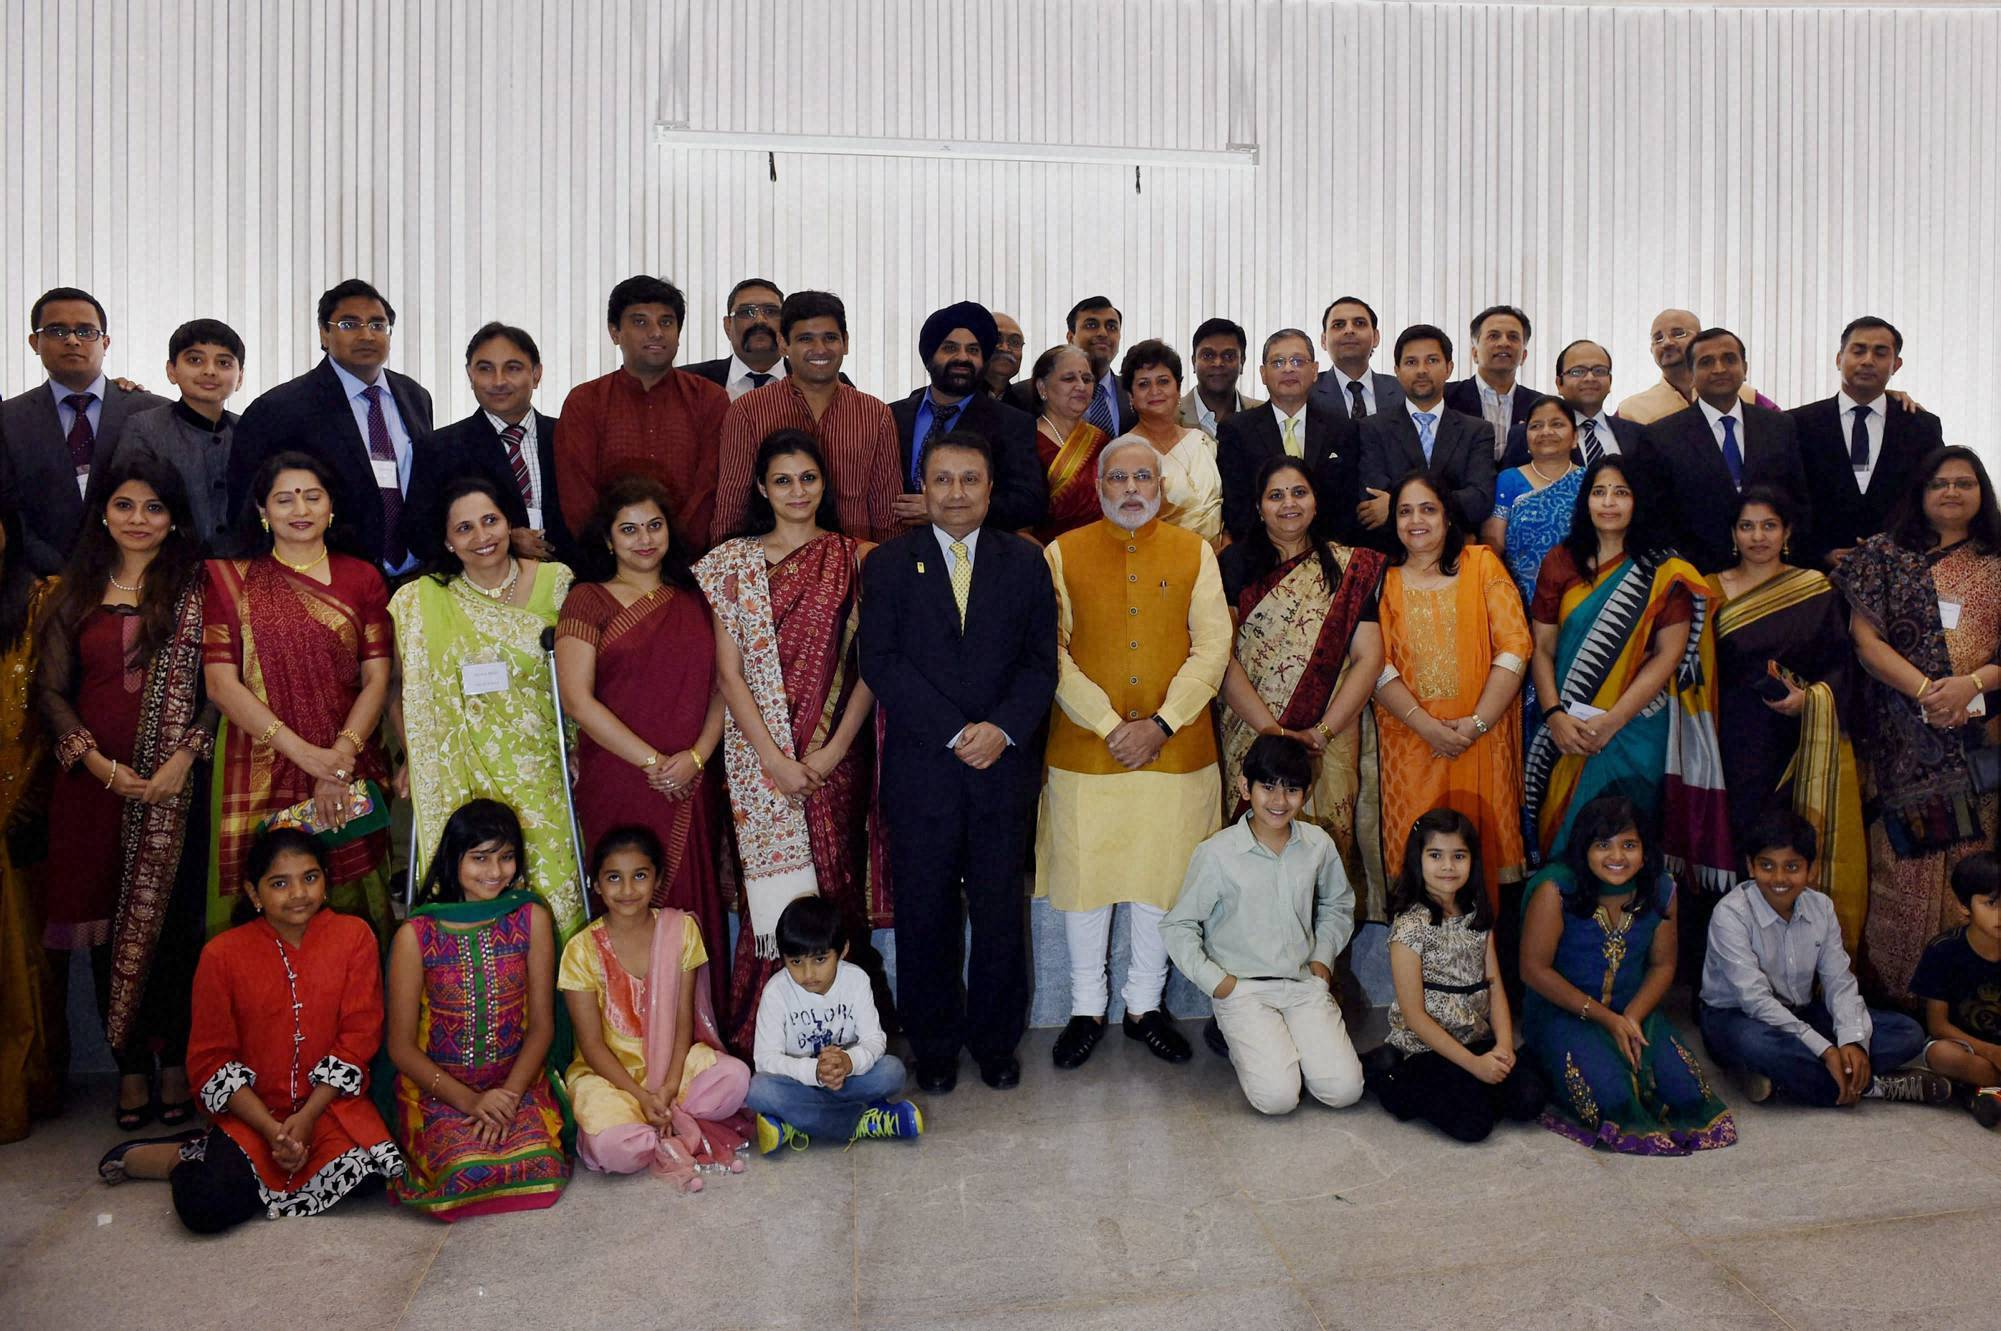 Prime Minister, Narendra Modi, inaugurating, new building, Indian Embassy, Brasilia